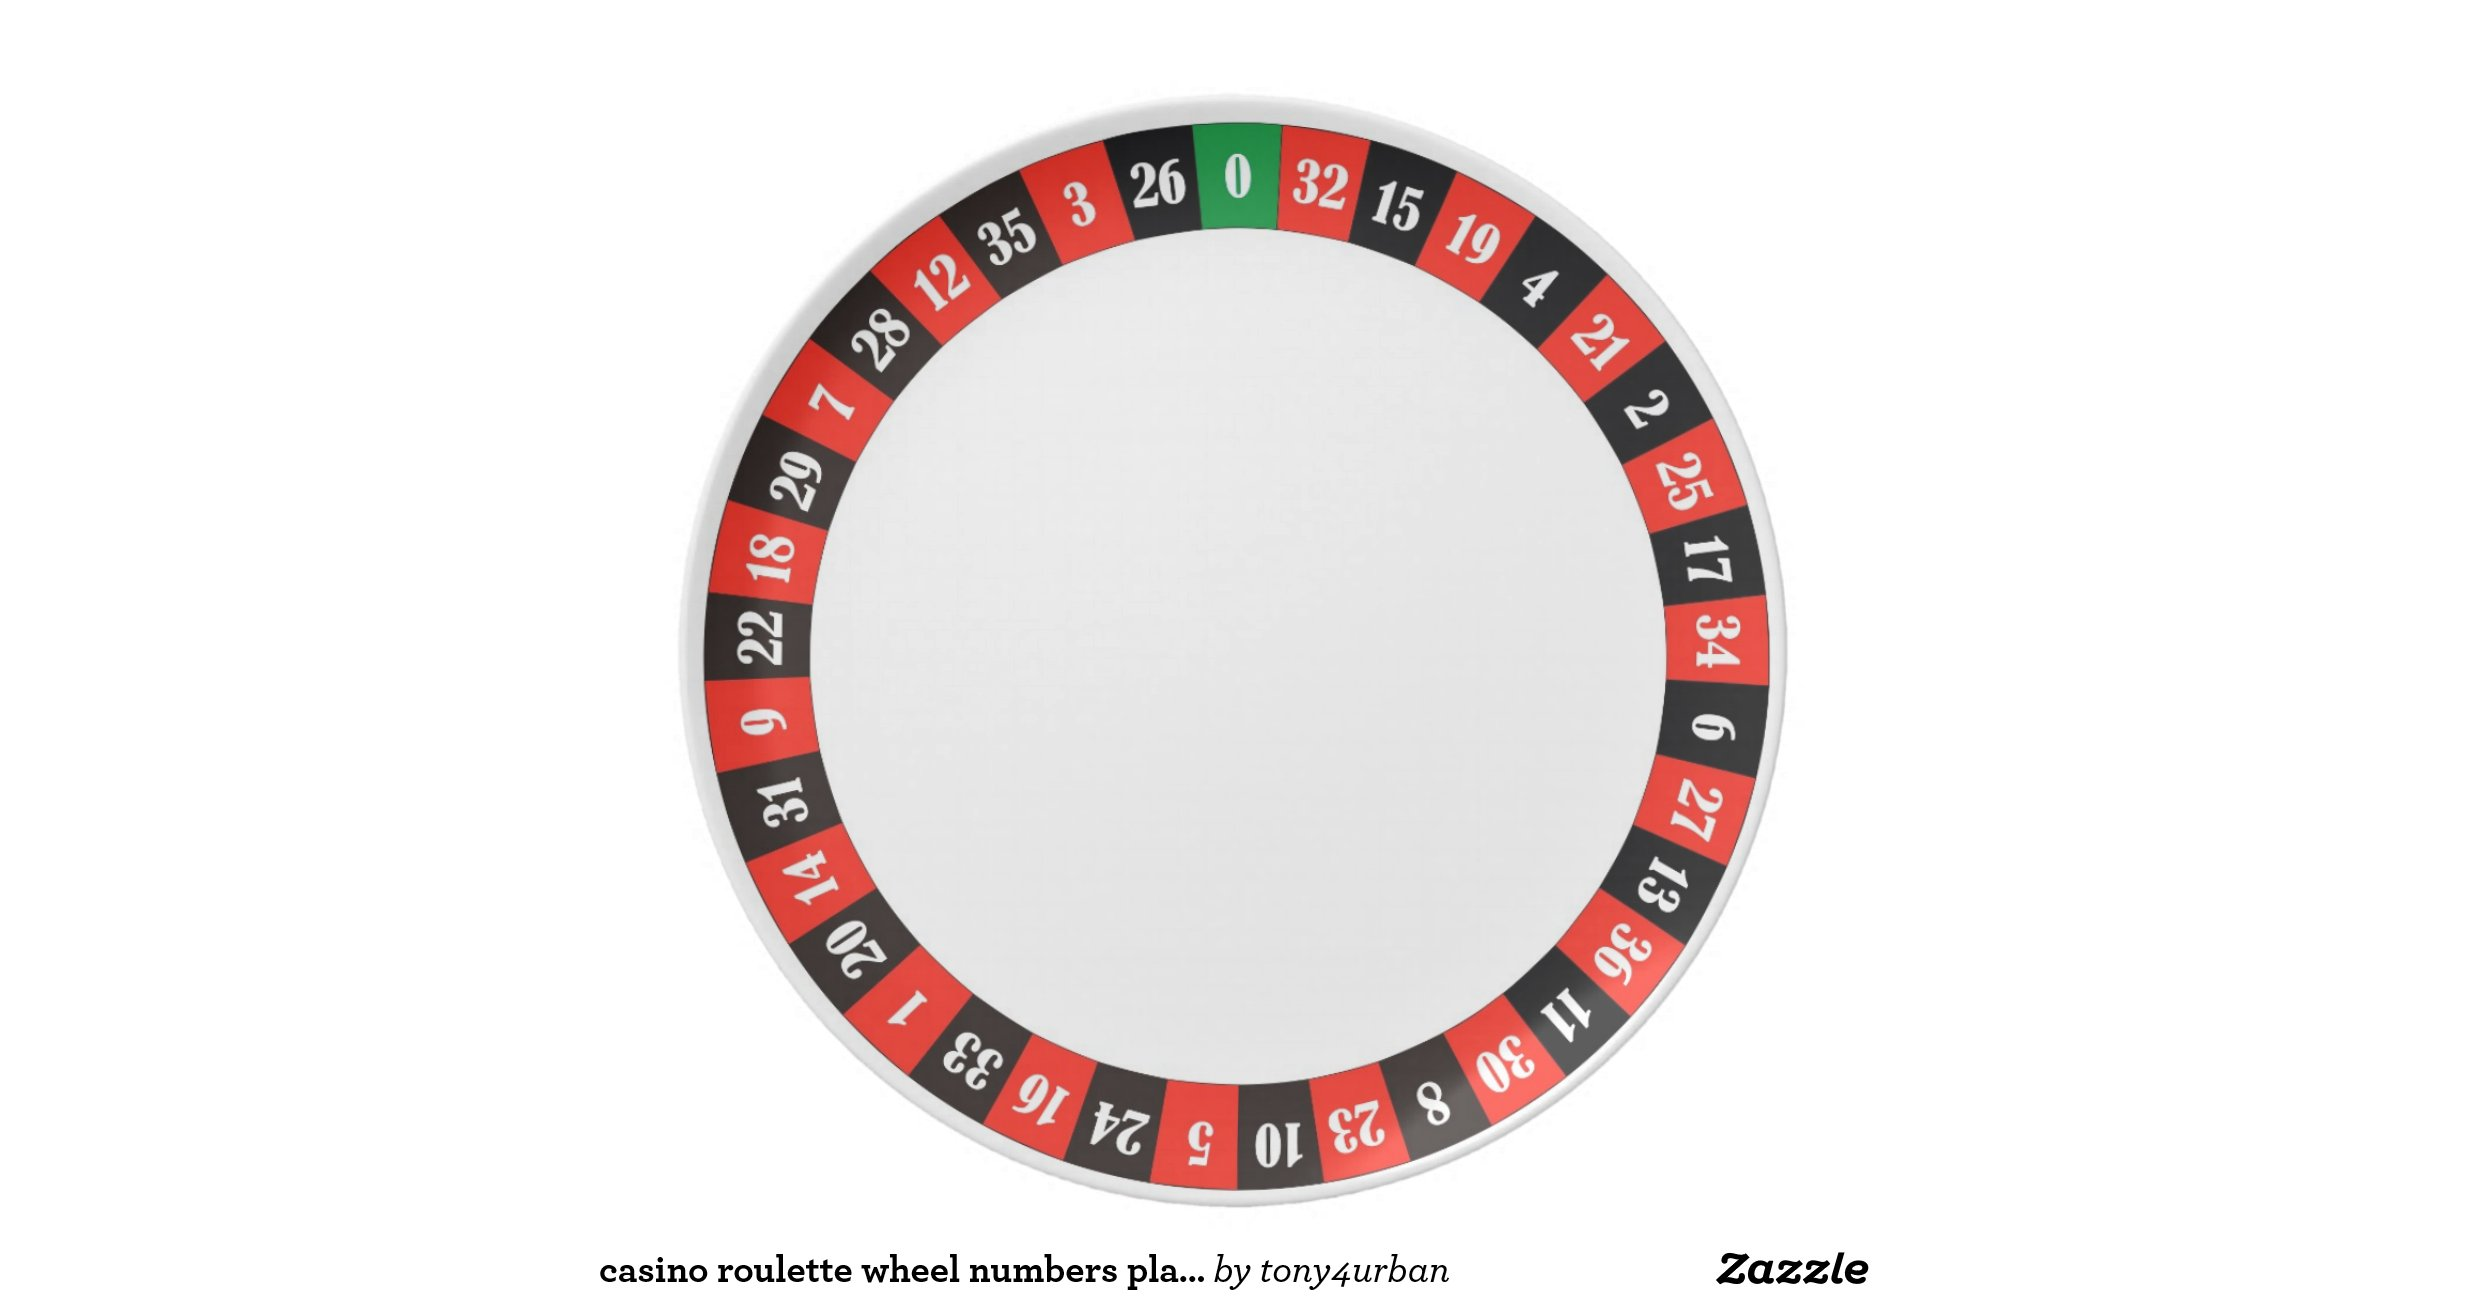 Roulette wheel even numbers